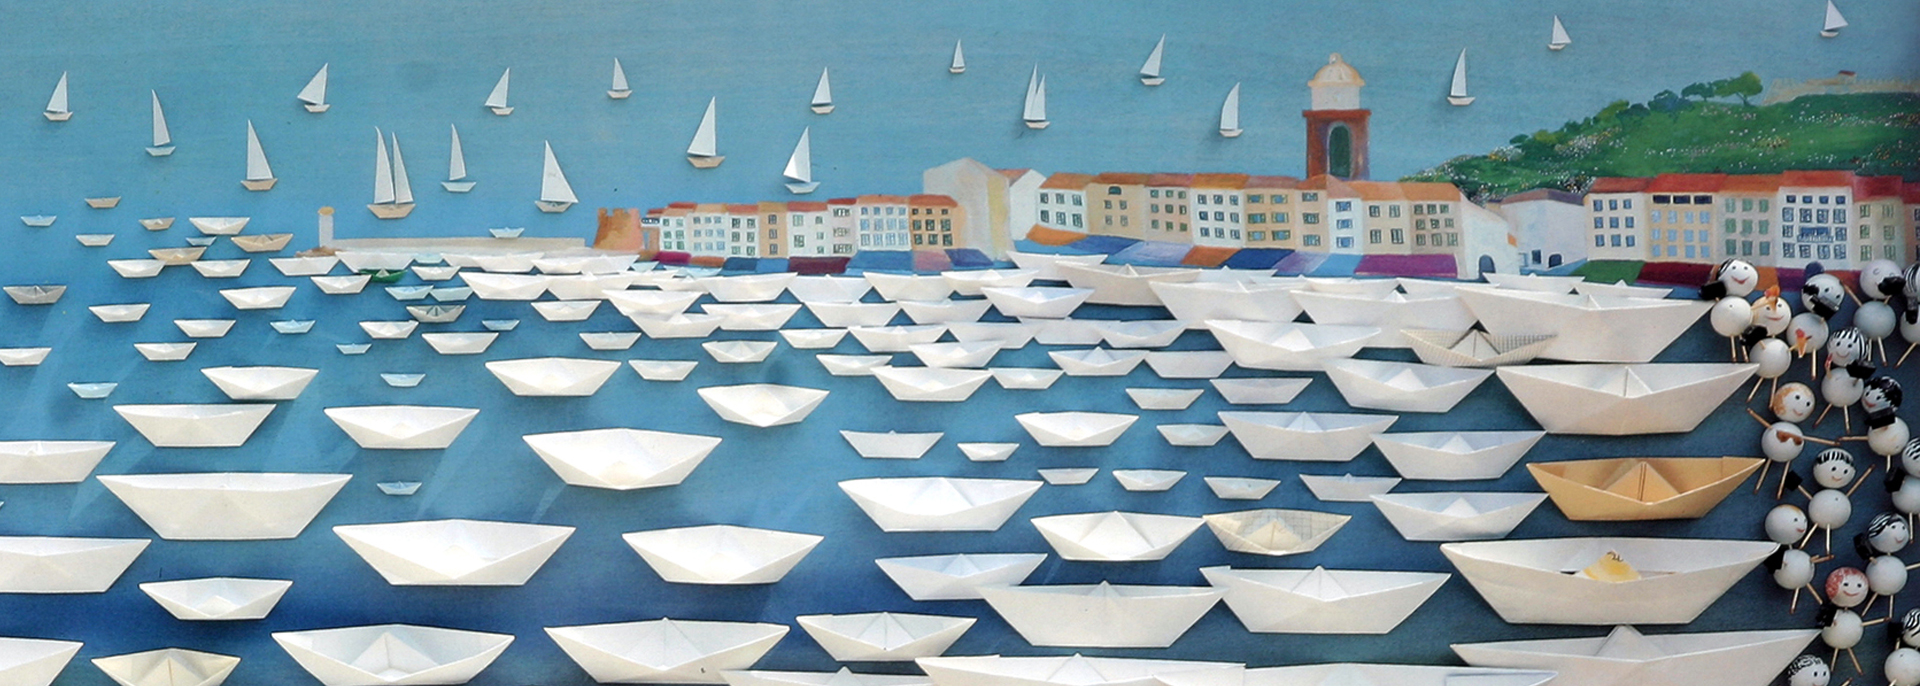 Artiste Peintre St Tropez st tropez's best contemporary artists and where to see their